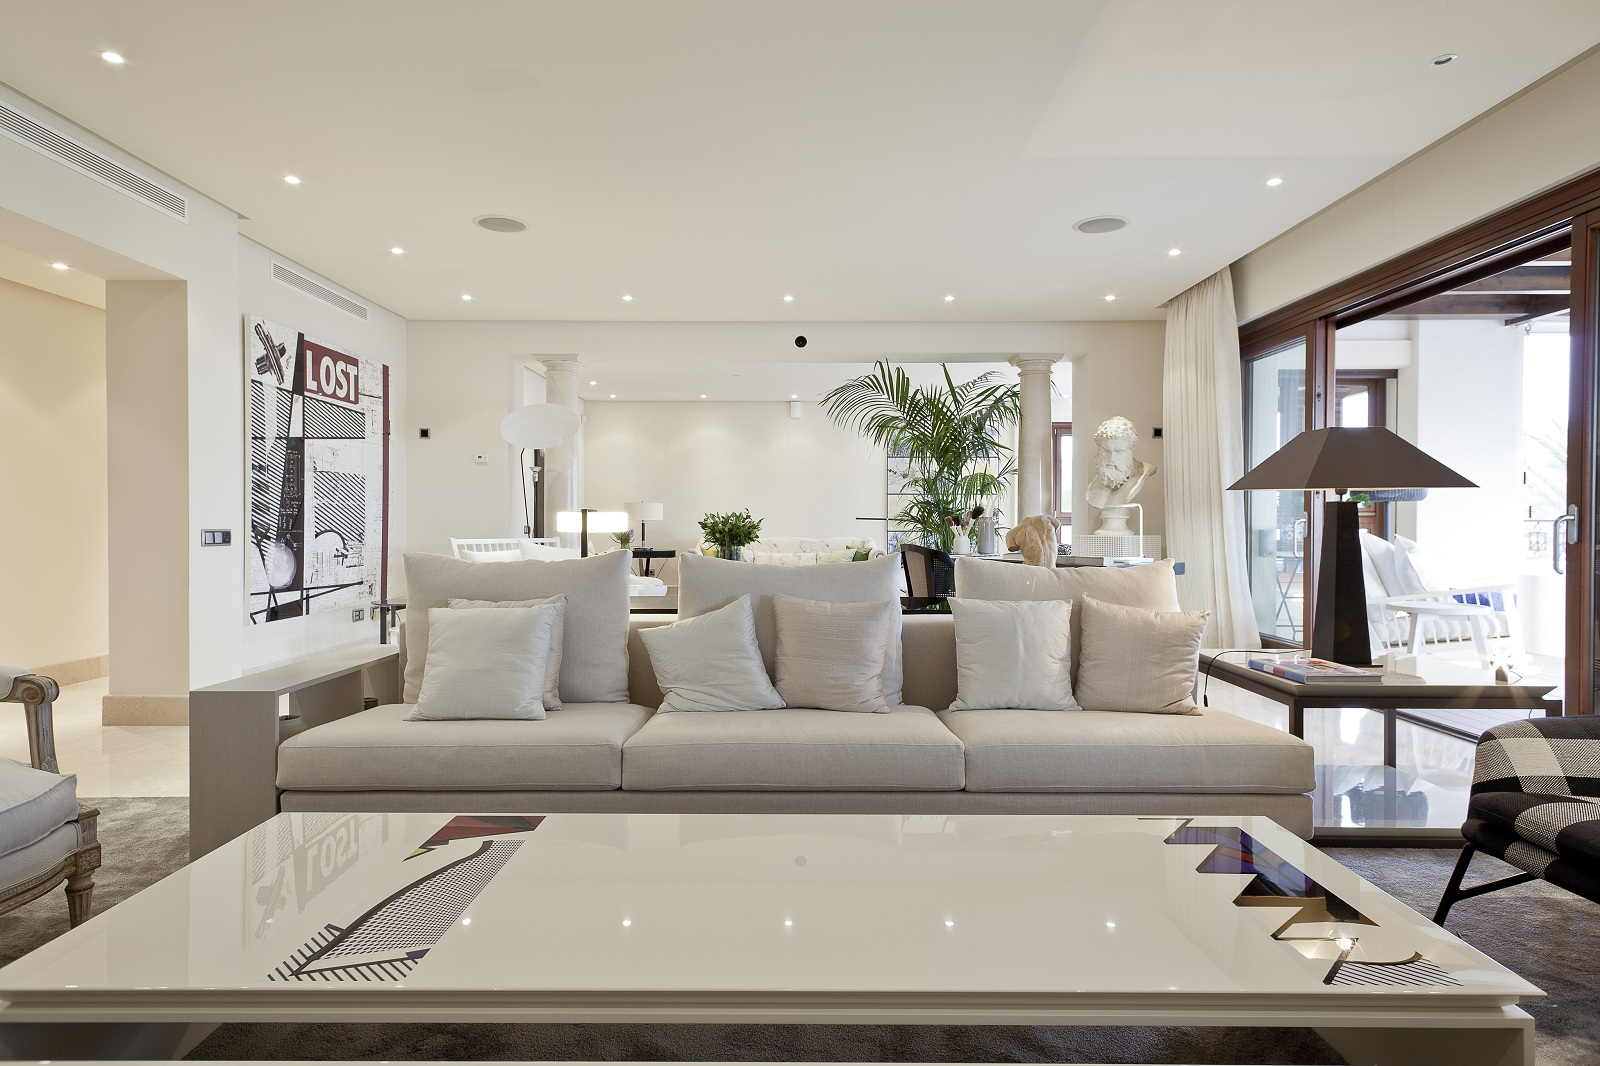 Sell a property in Marbella Nevado Realty